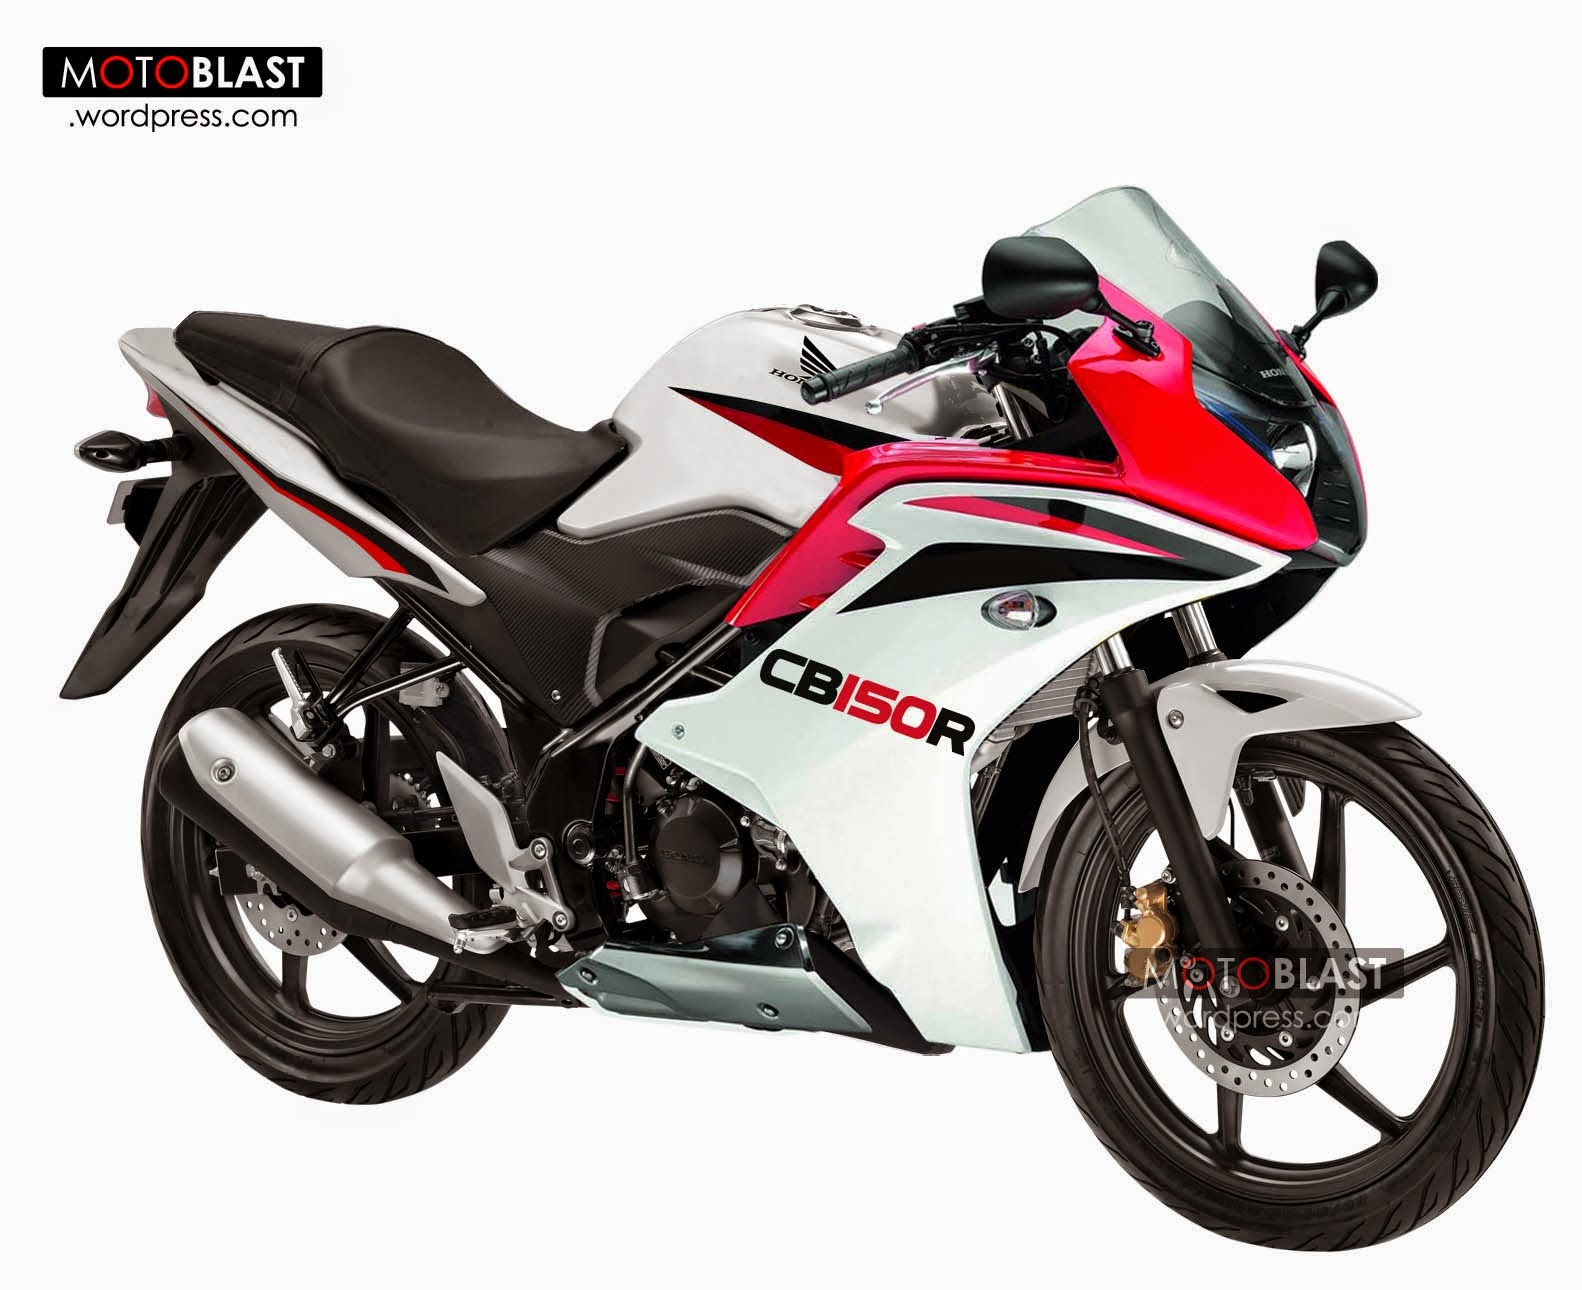 Honda Cb150r Modifikasi Touring